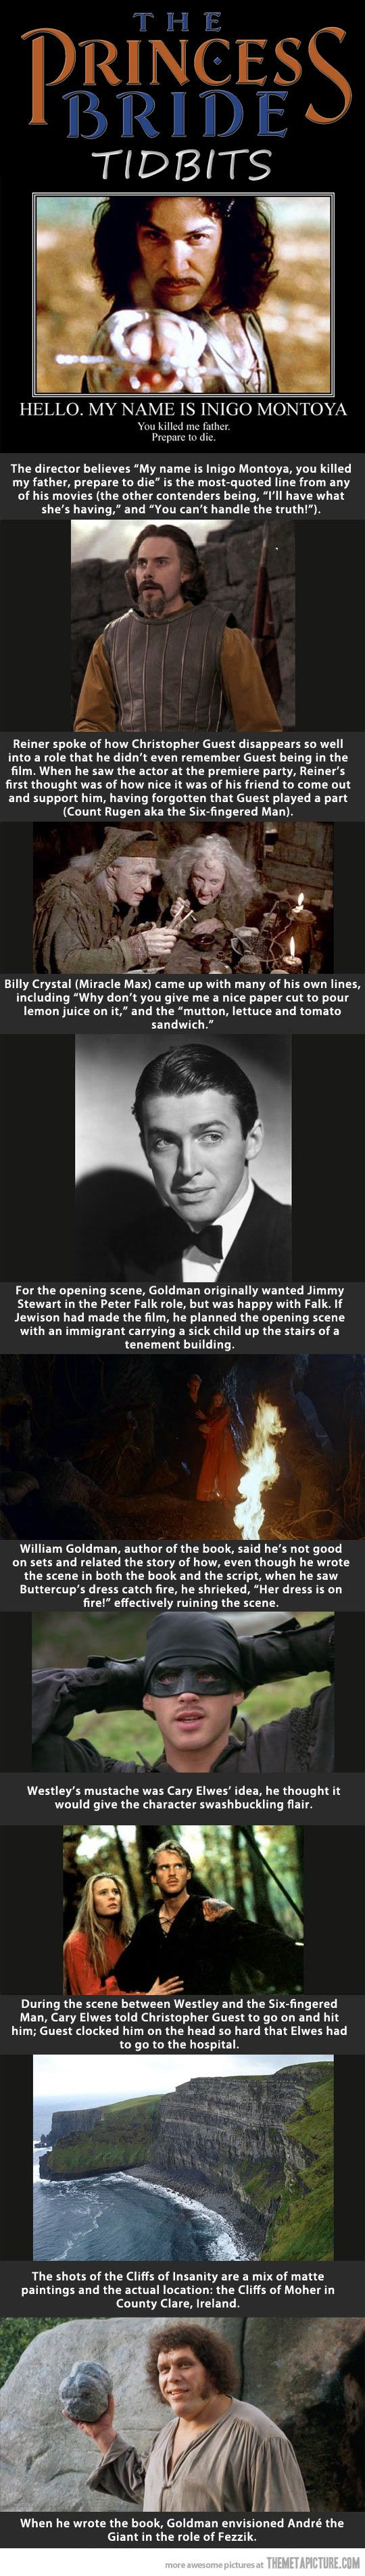 This is one of my favorite movies and most treasured childhood memories. This little consolidation of facts makes me very happy.